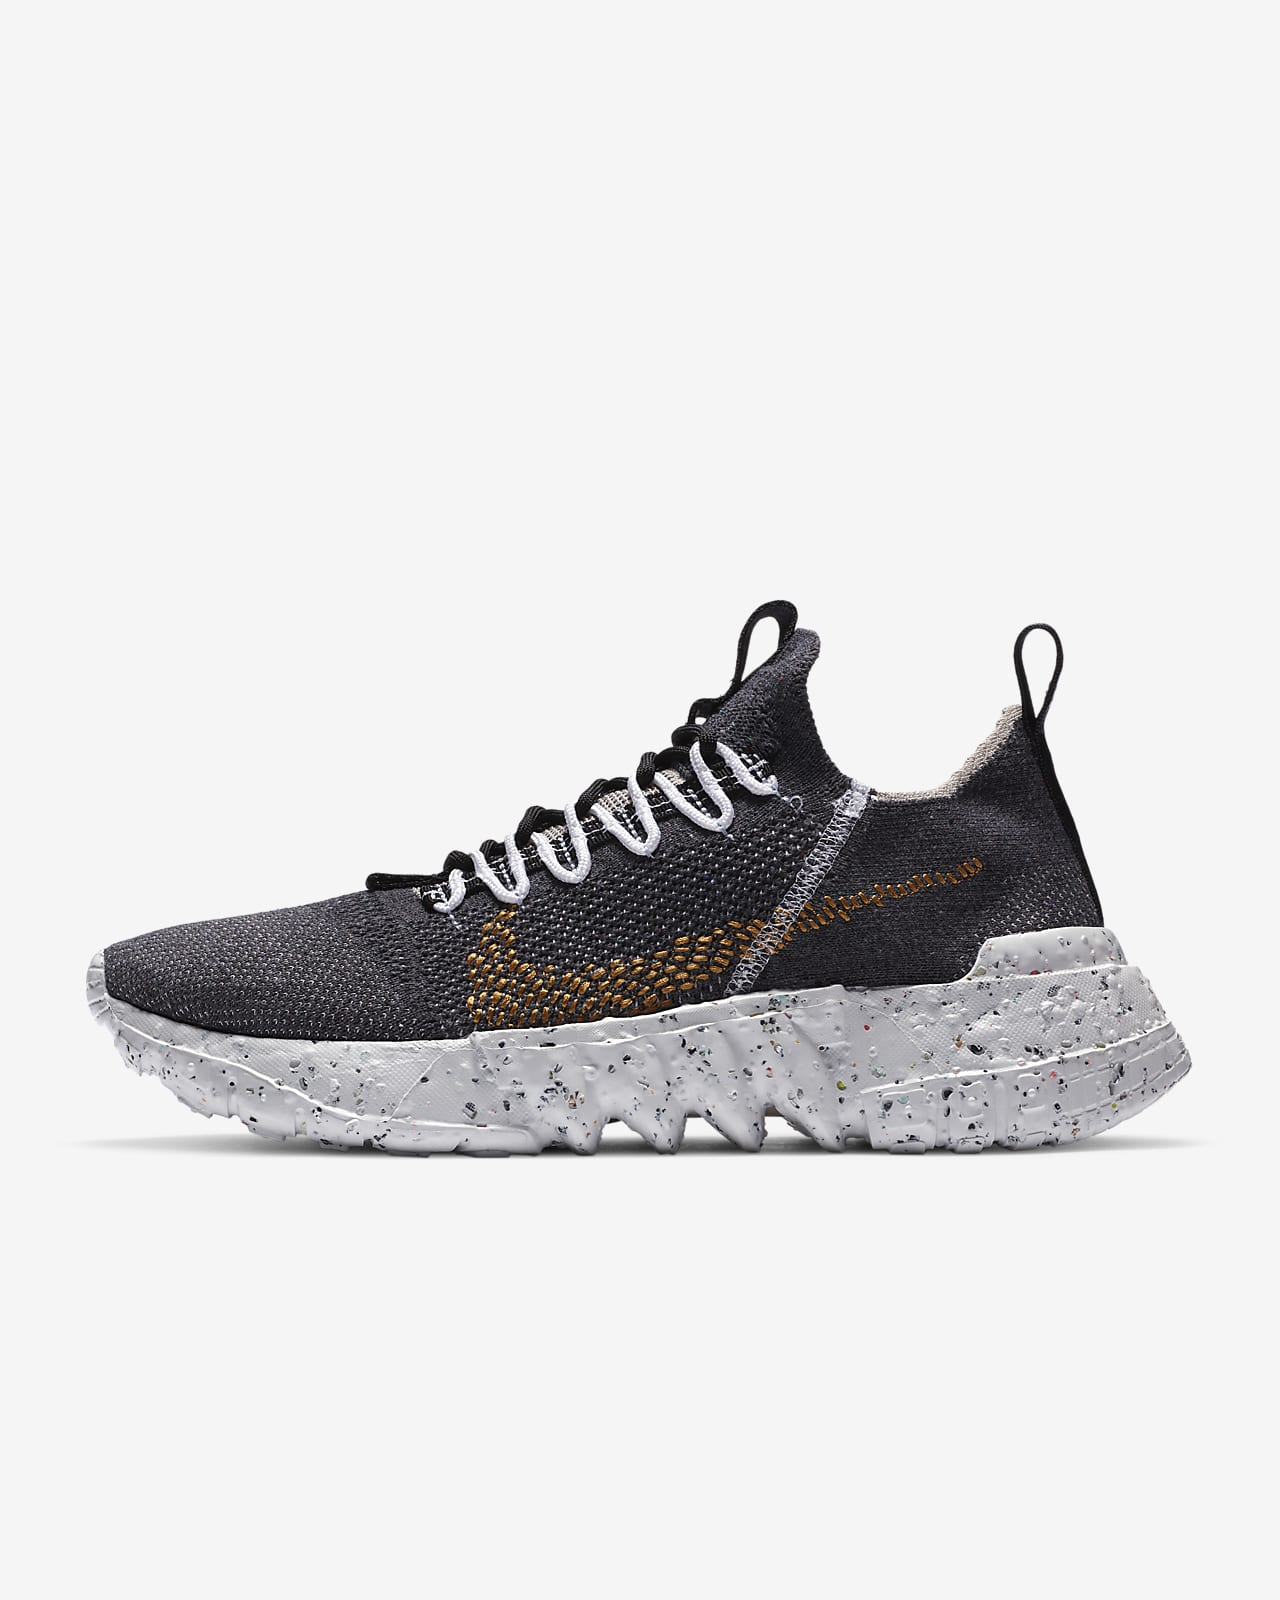 Nike Space Hippie 01 Schoen